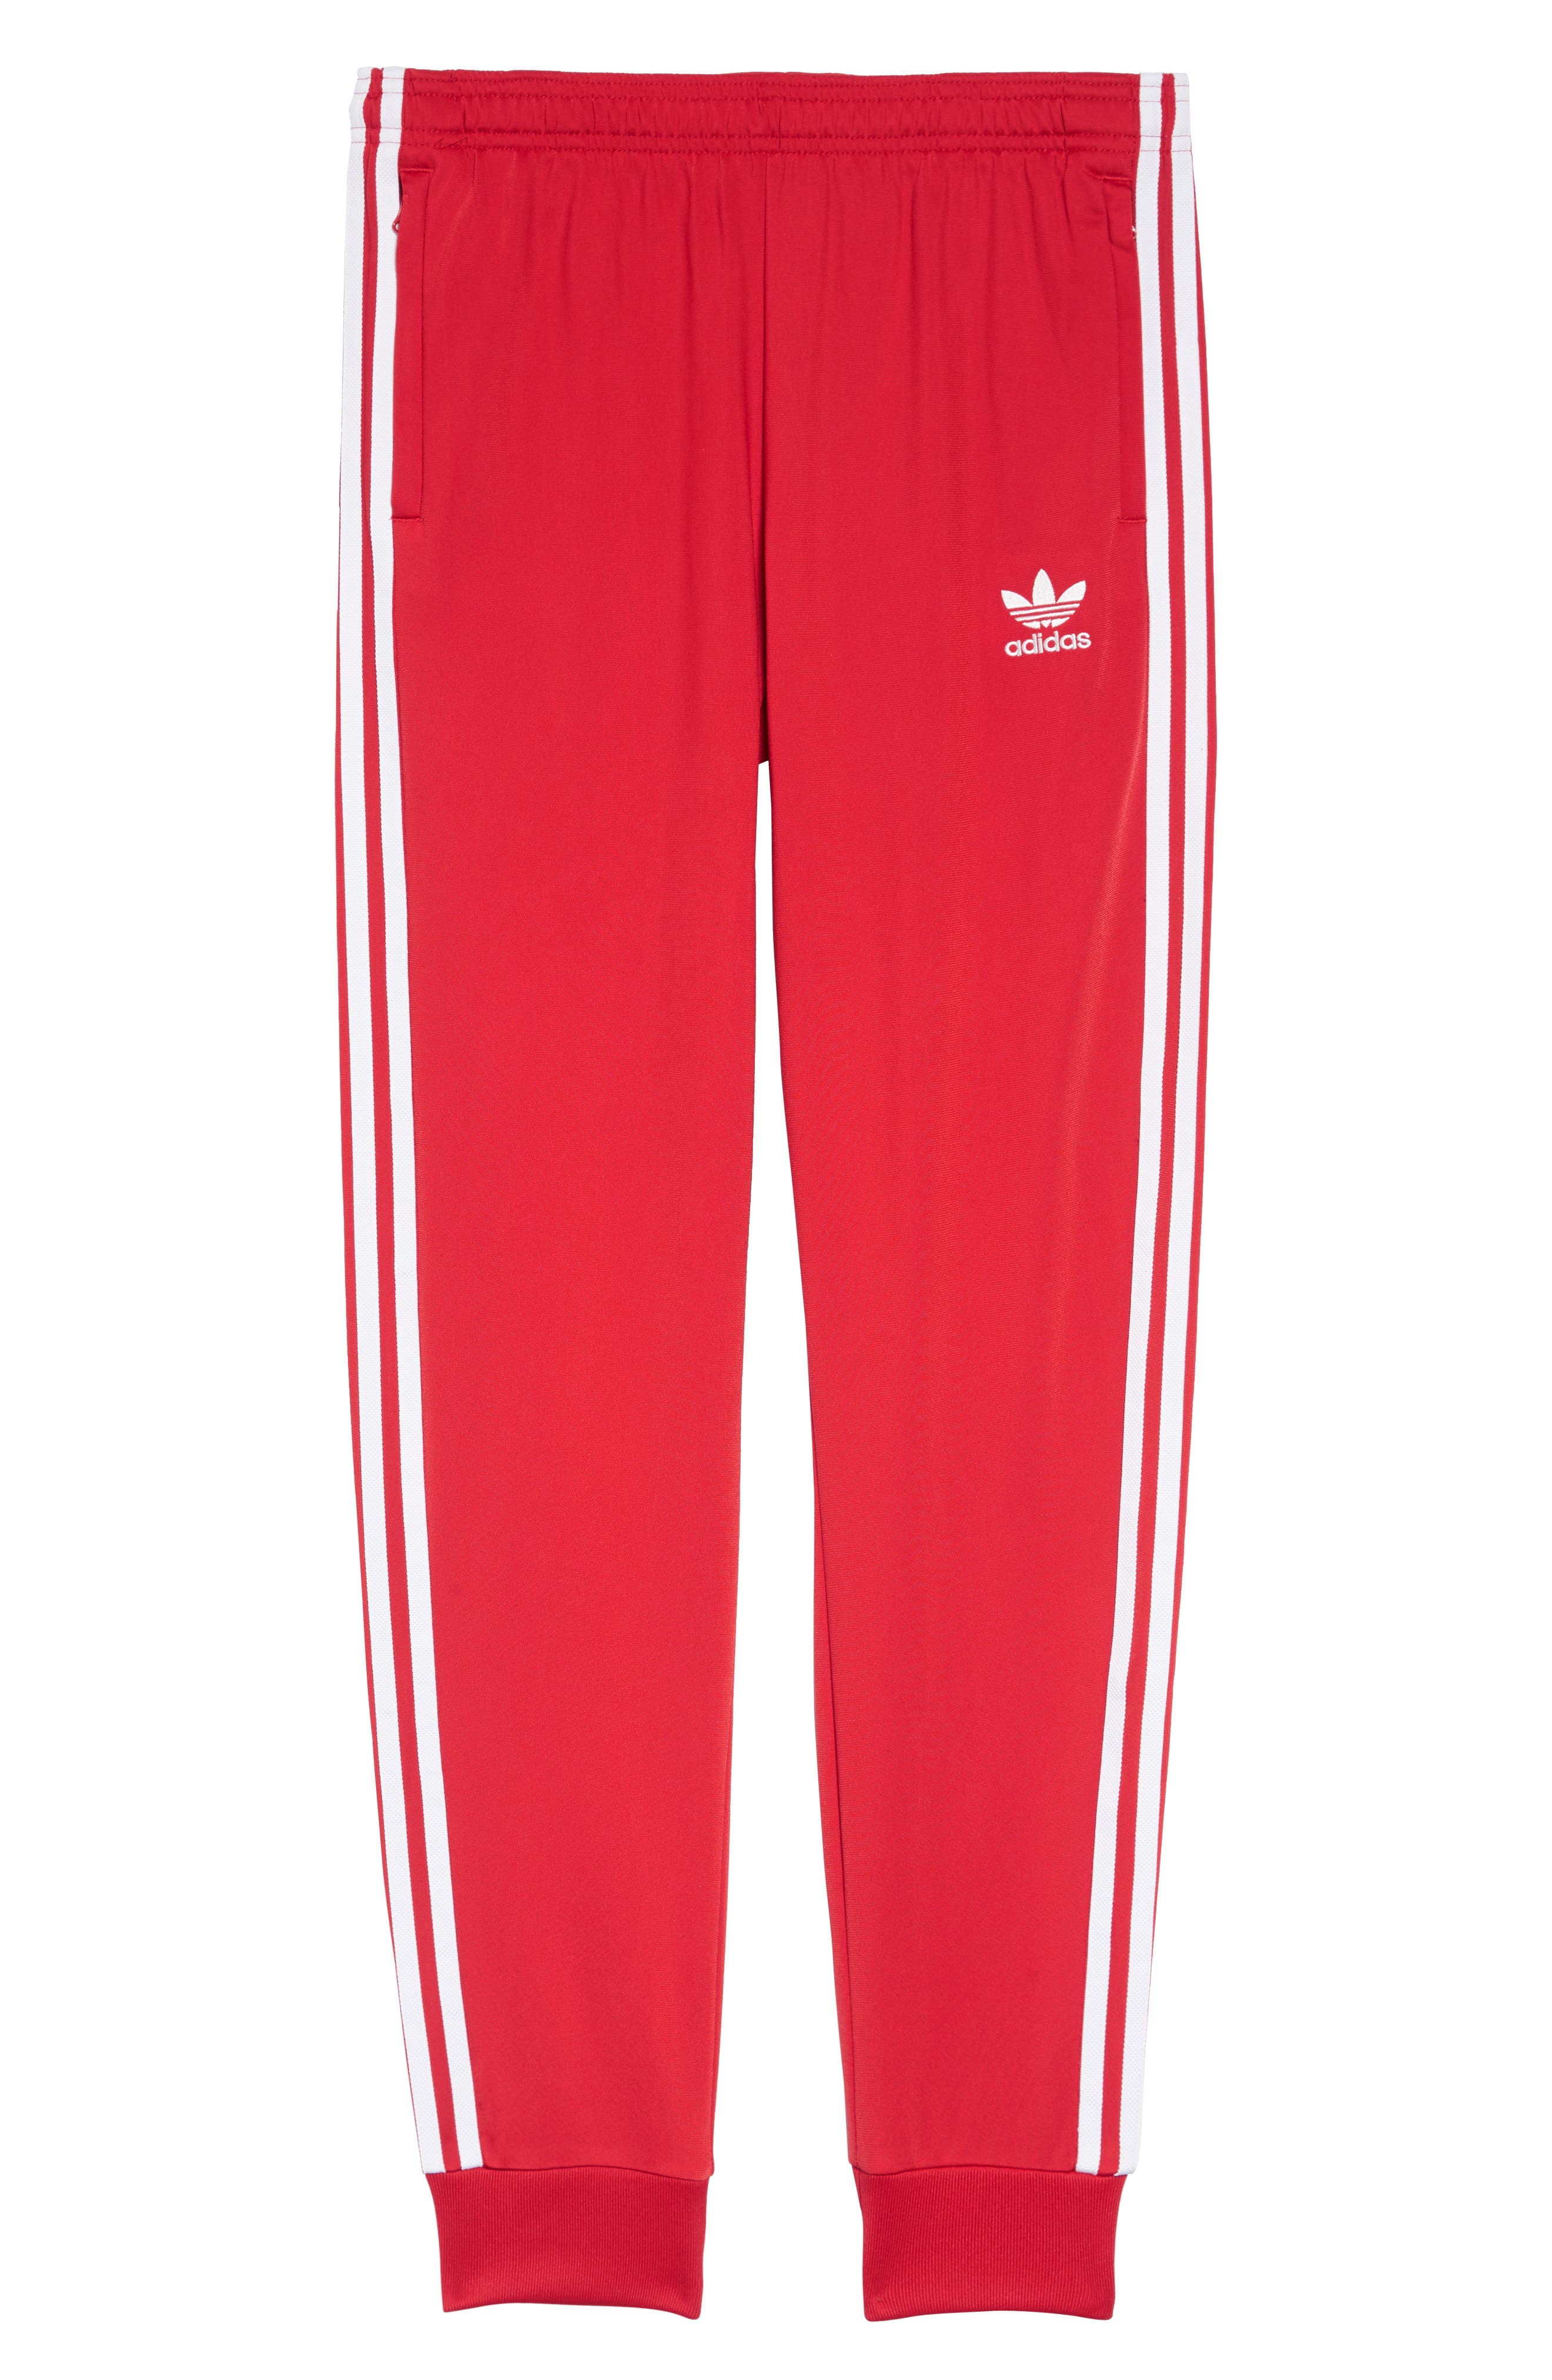 Superstar Track Pants,                             Main thumbnail 1, color,                             COLLEGIATE RED/ WHITE